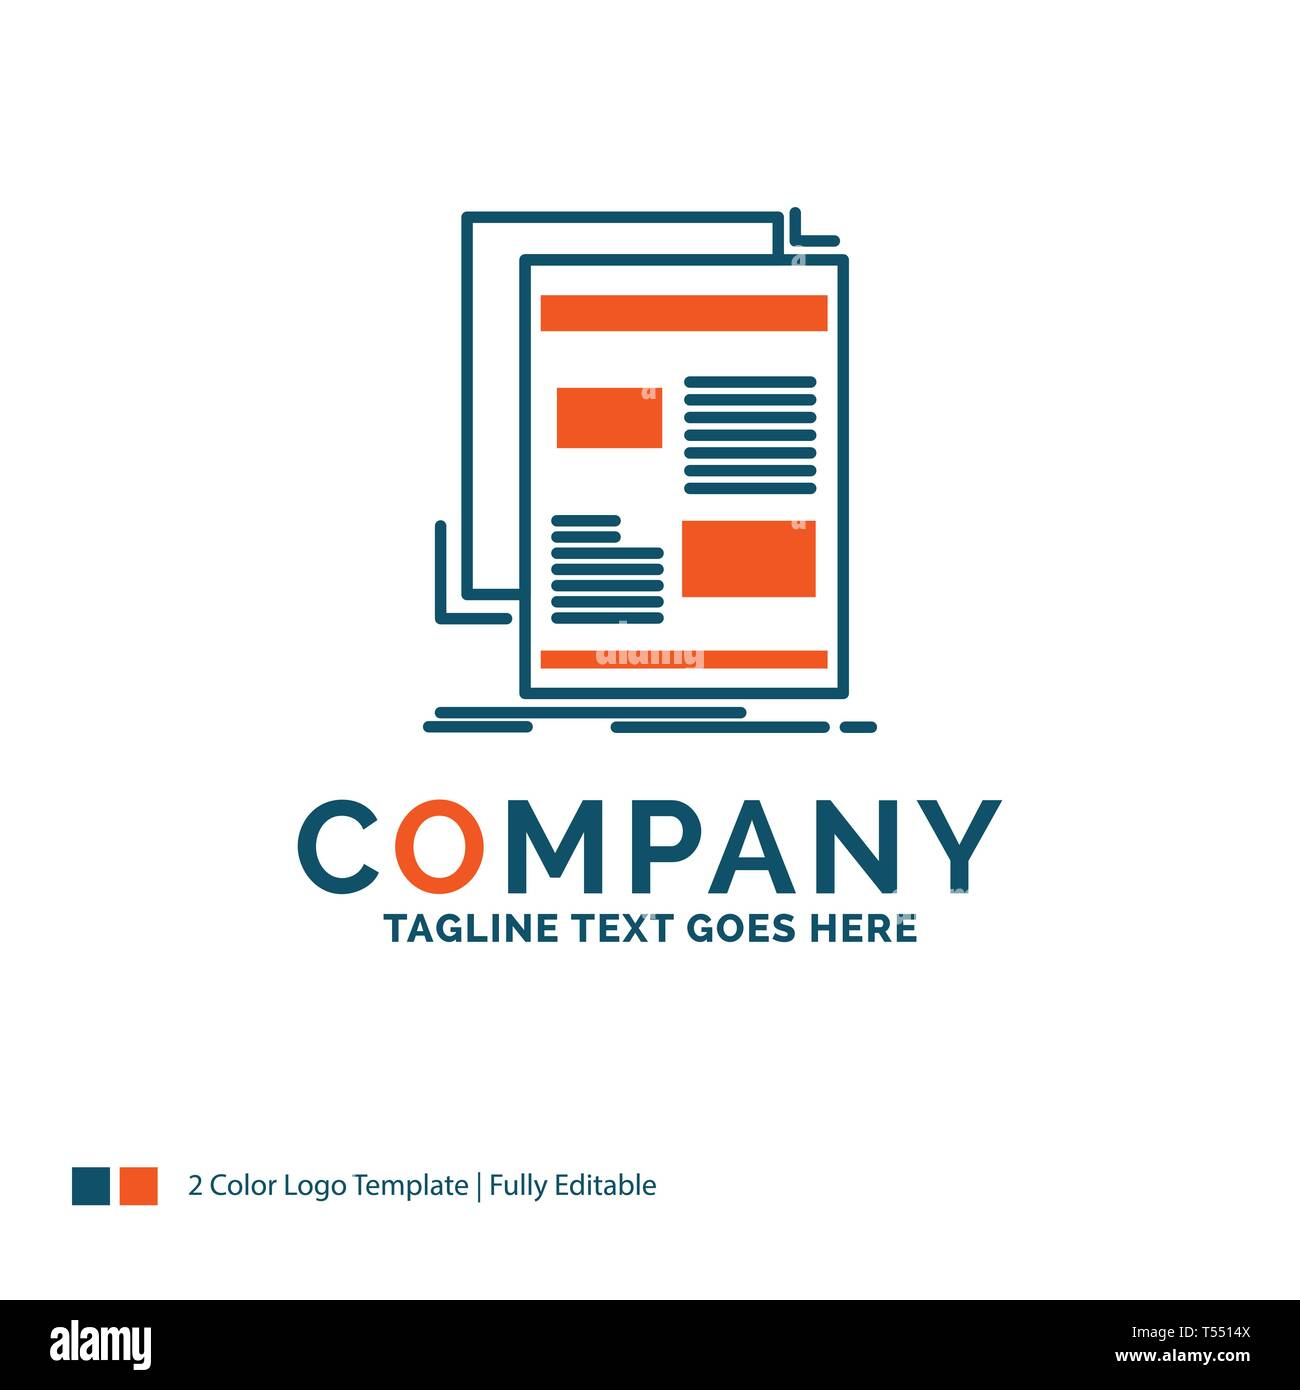 Brand Name Article Stock Photos & Brand Name Article Stock